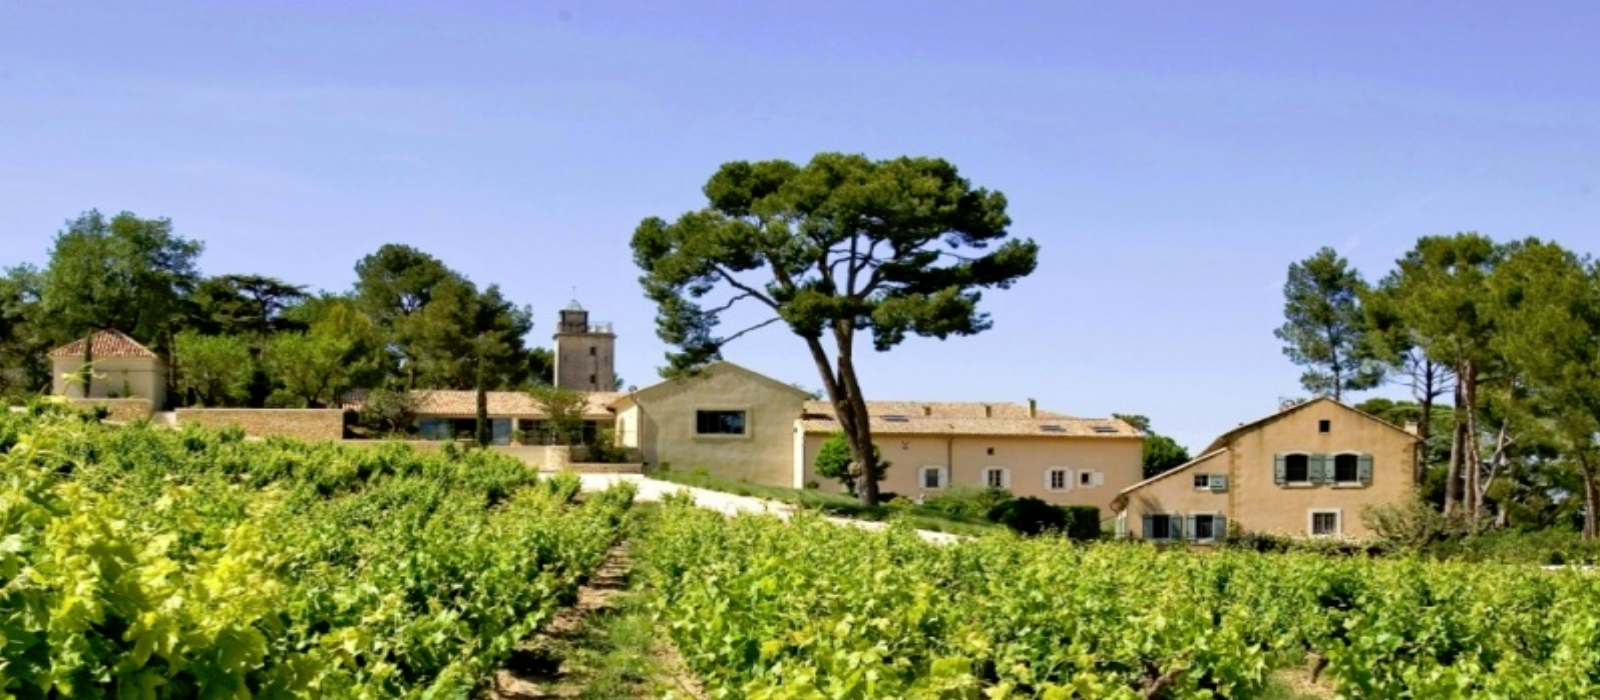 CHARMING WEDDING VENUE IN THE HEART OF PROVENCE 2